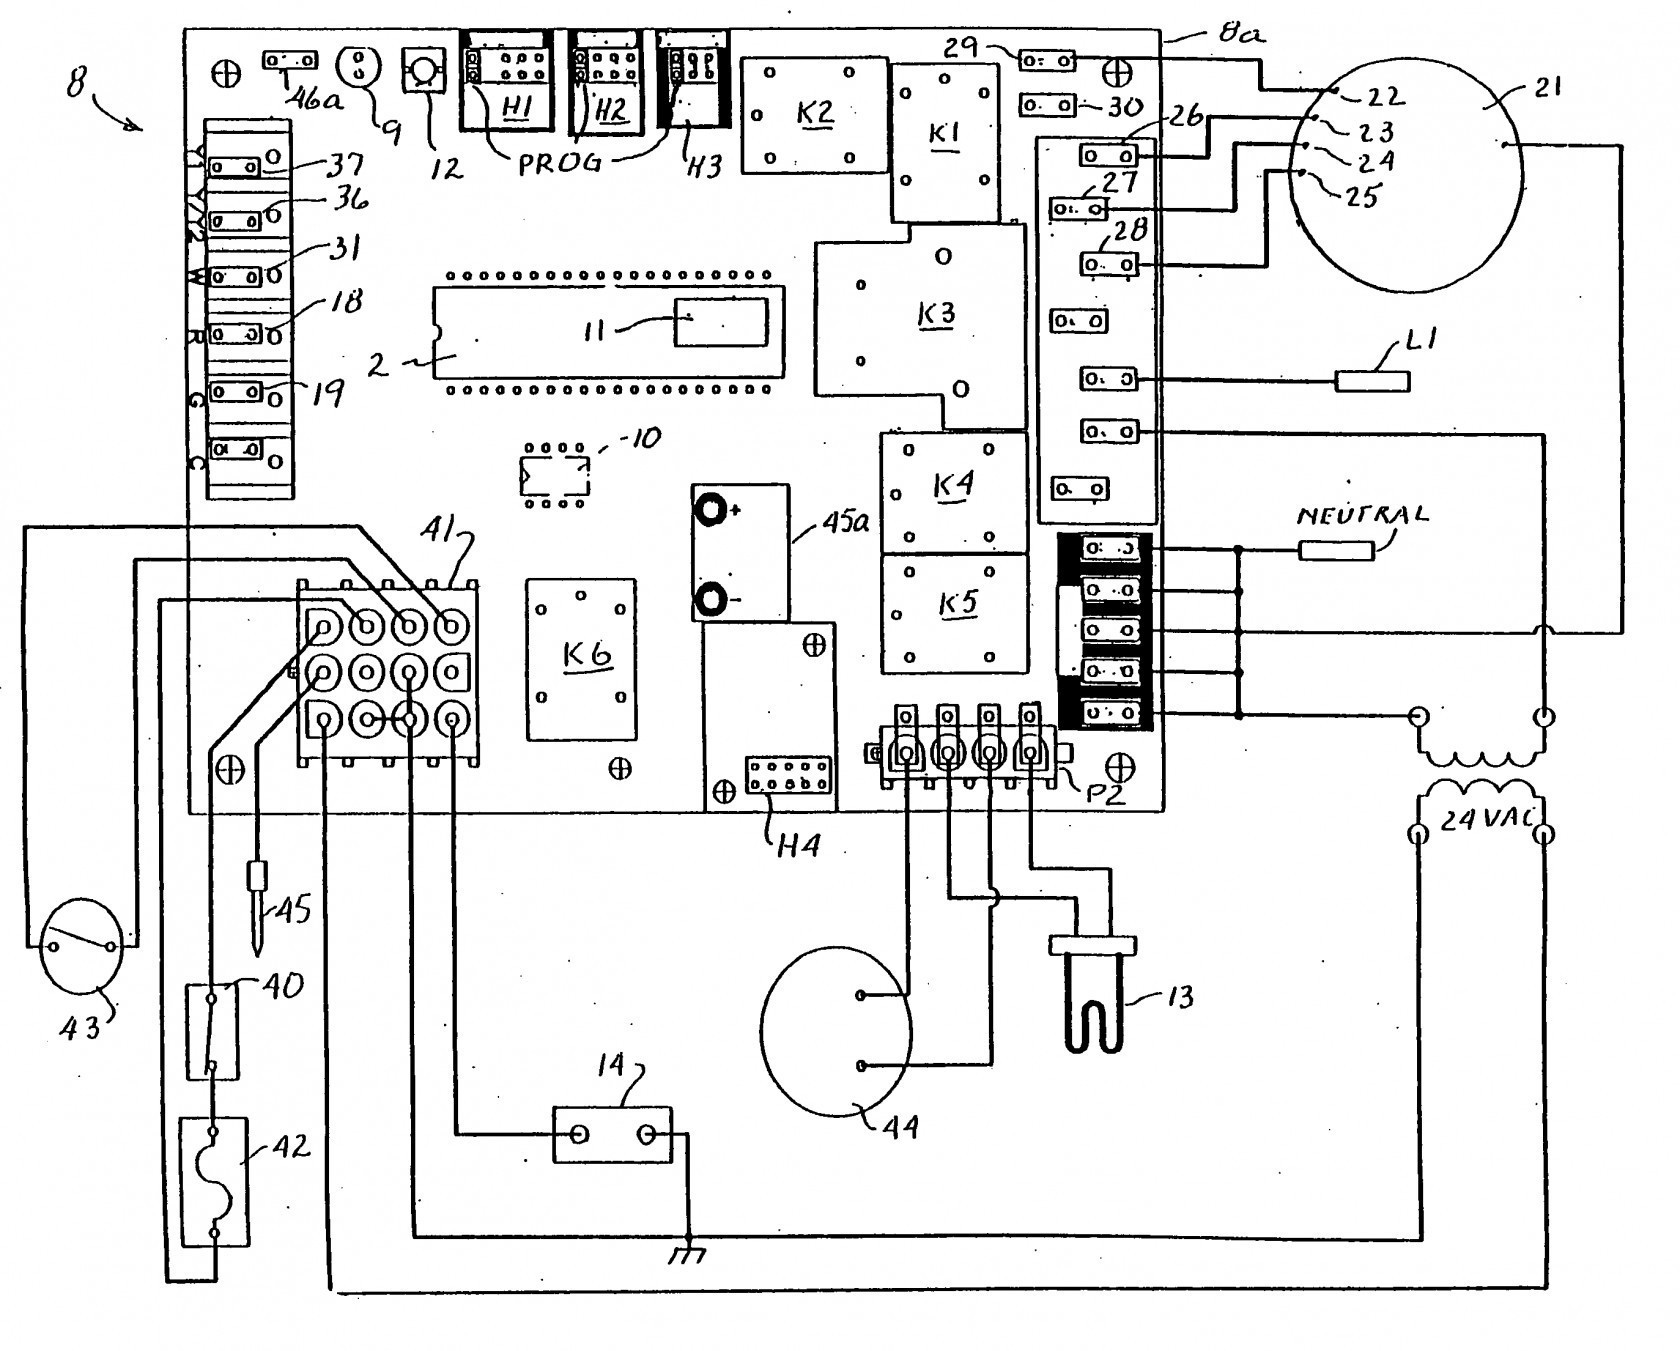 stearns brake wiring diagram human muscle cell labeled ruud heat pump my